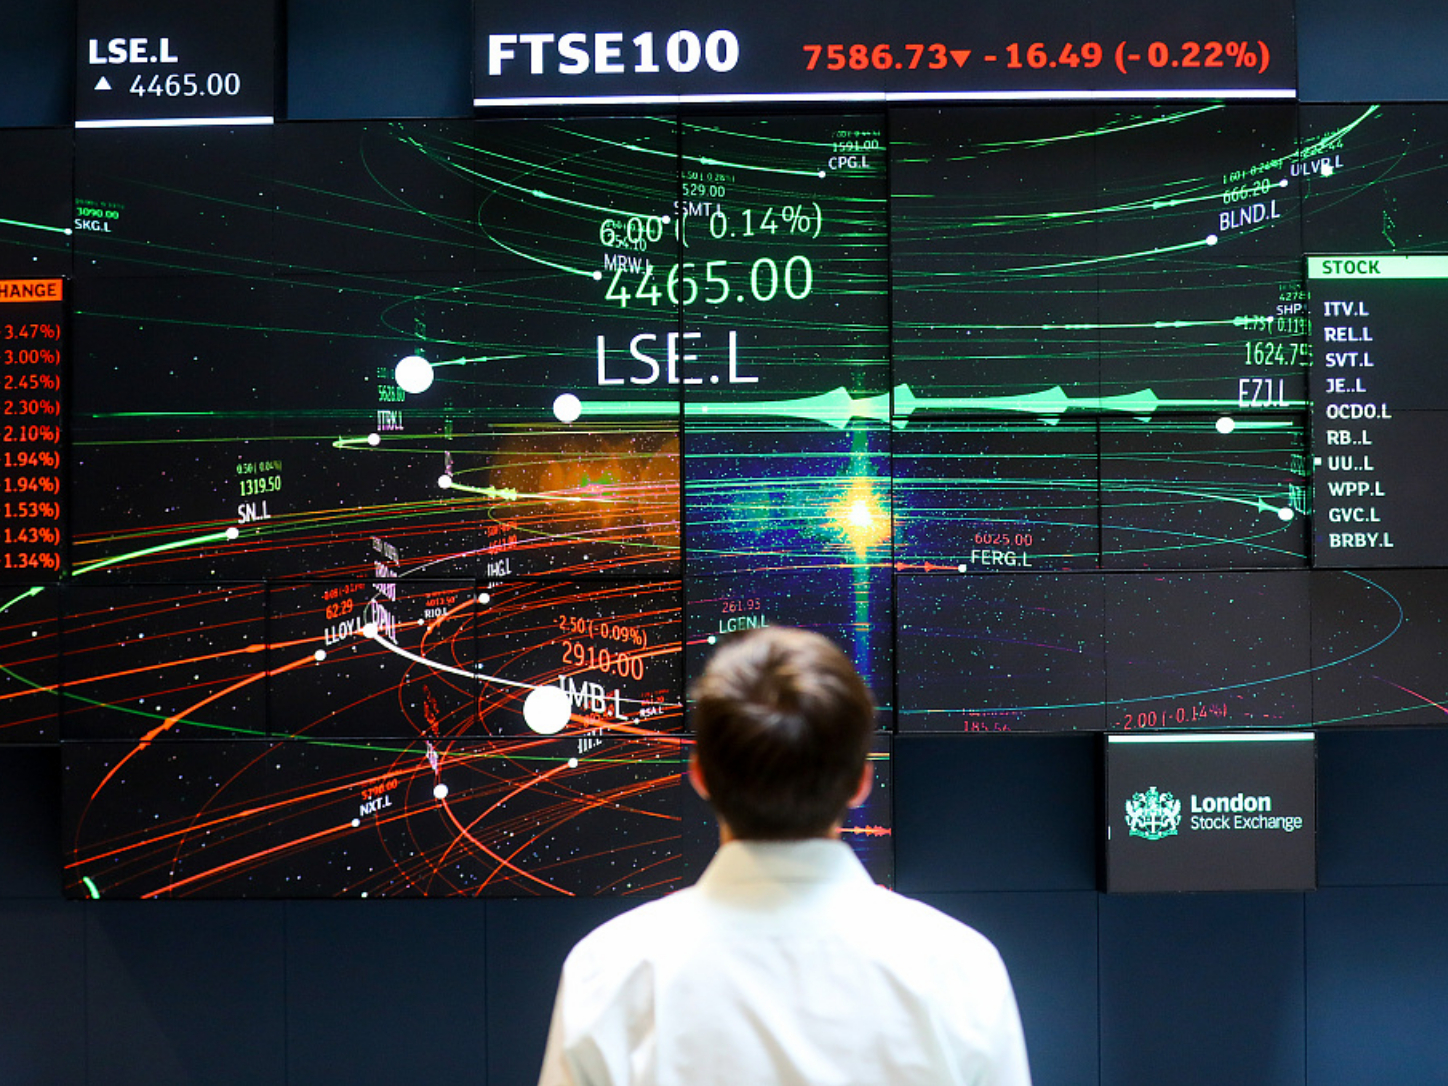 London Stock Exchange opening delayed by technical issue